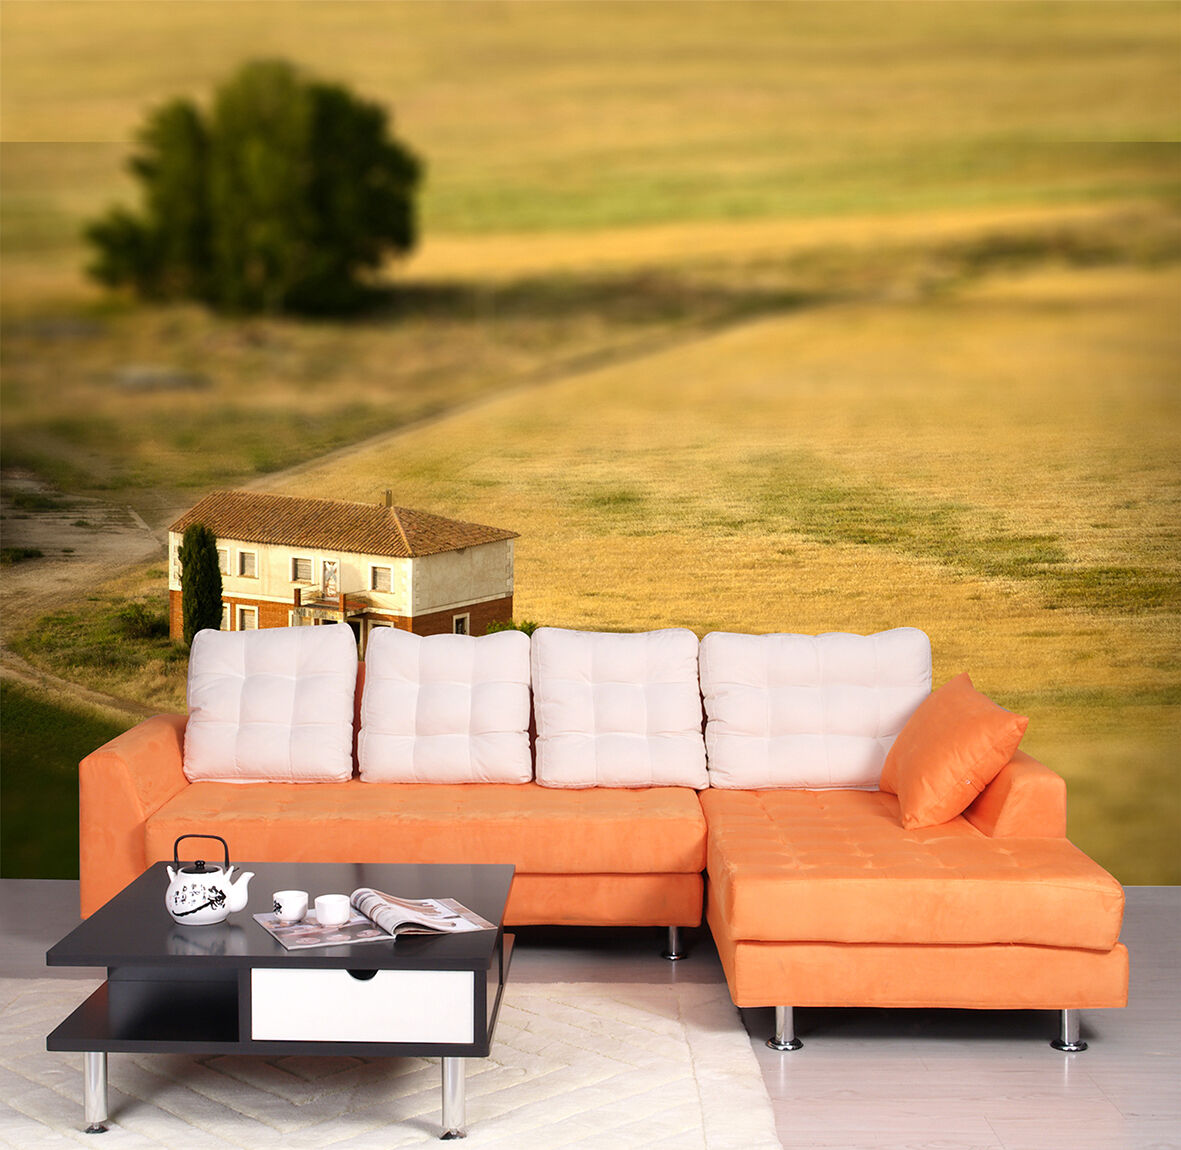 3D Paddy field 3544 Wall Paper Wall Print Decal Wall Deco Indoor Wall Murals